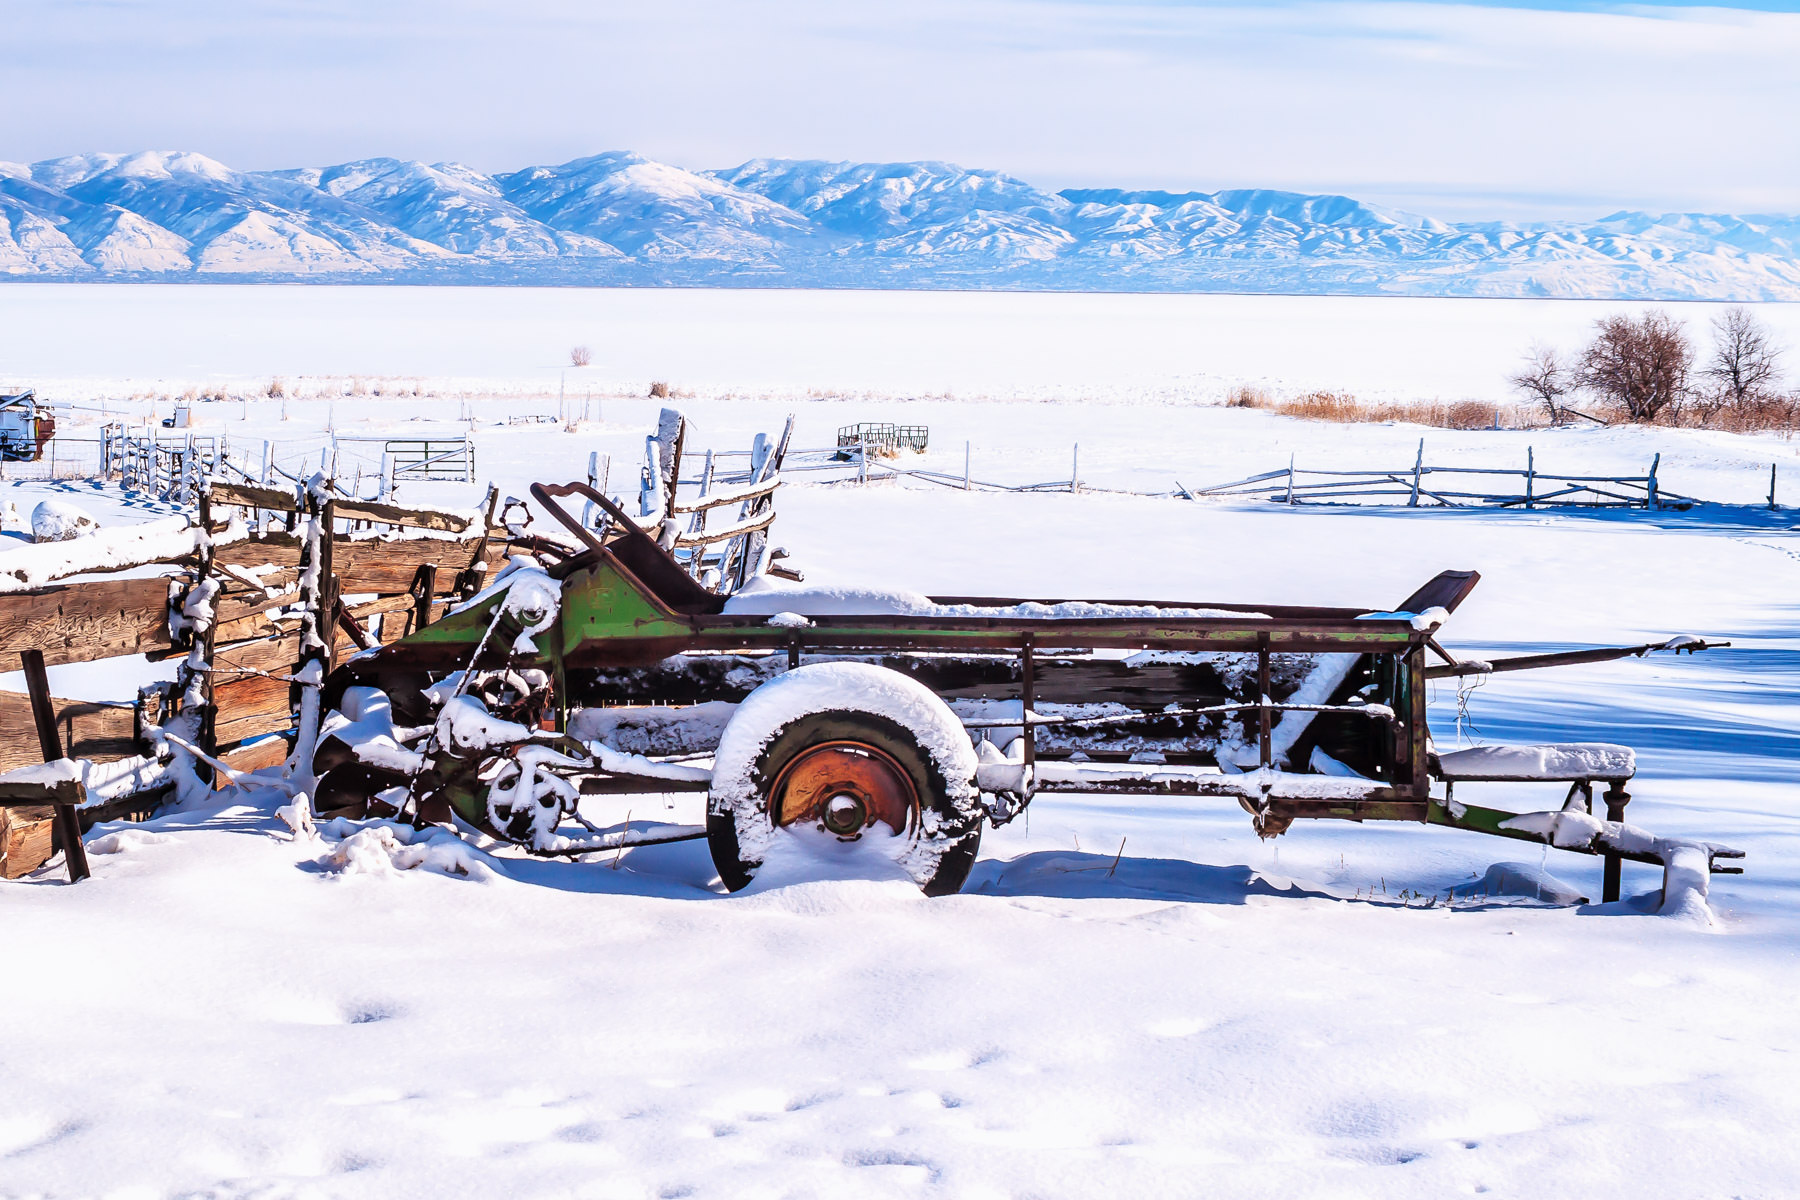 Old farm equipment at the Fielding Garr Ranch, Antelope Island State Park, Utah.